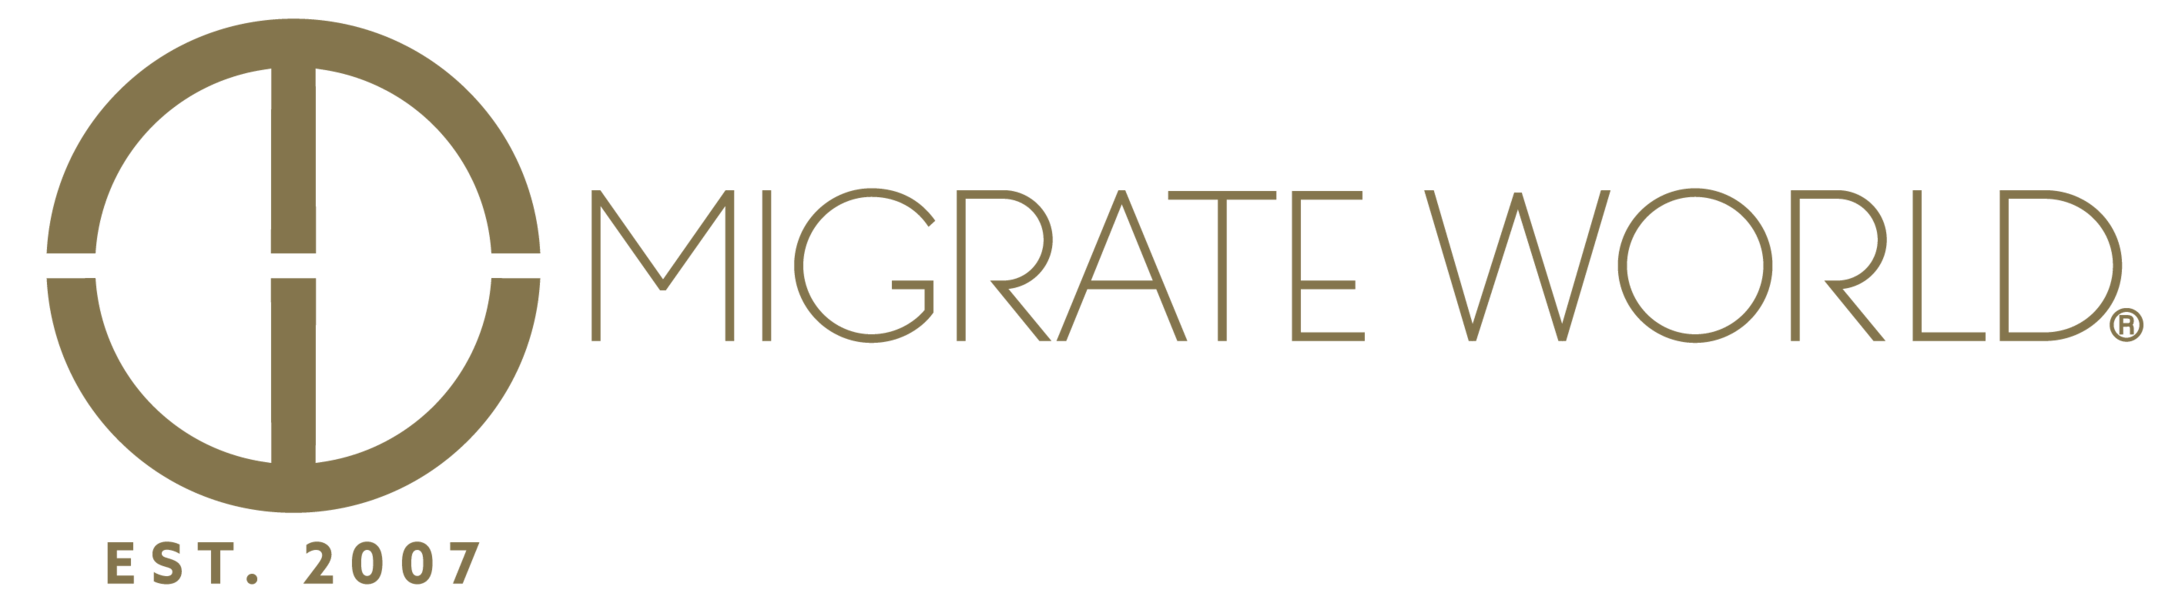 Migrate World